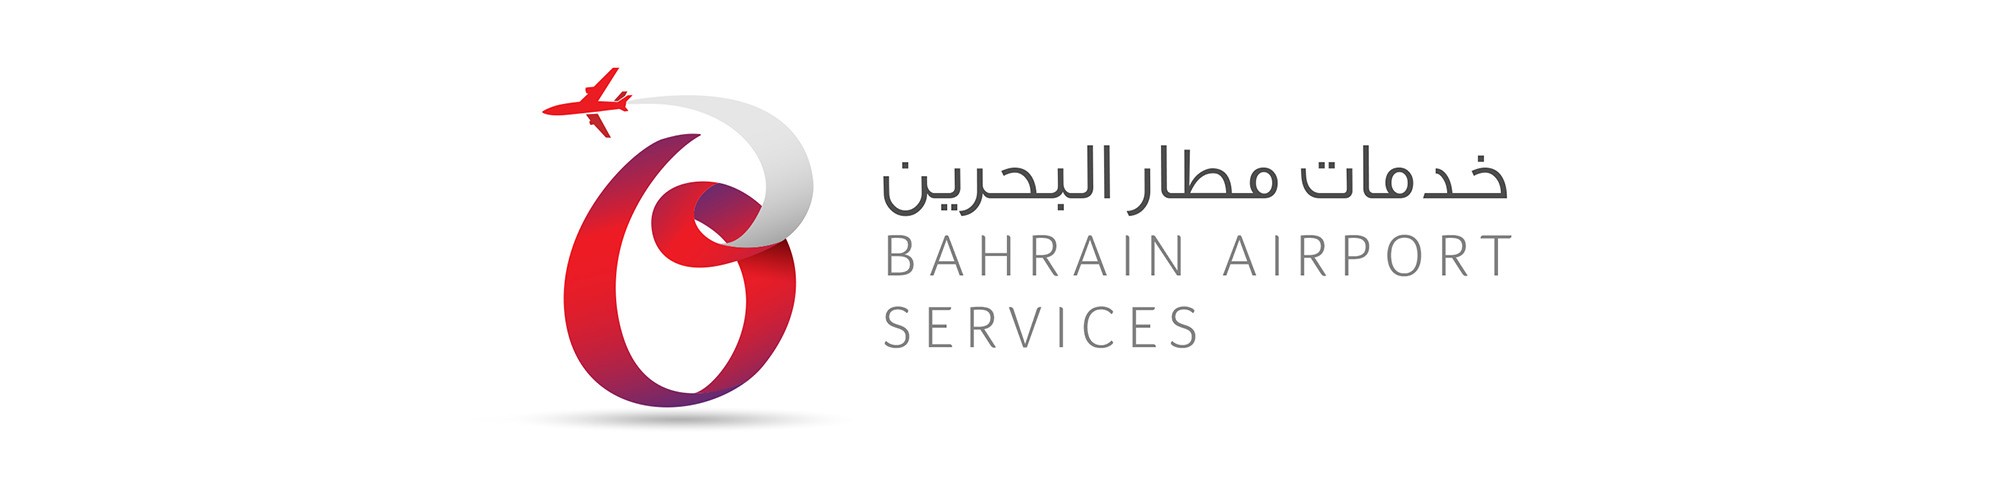 Home | Welcome to Bahrain Airport Services (BAS)